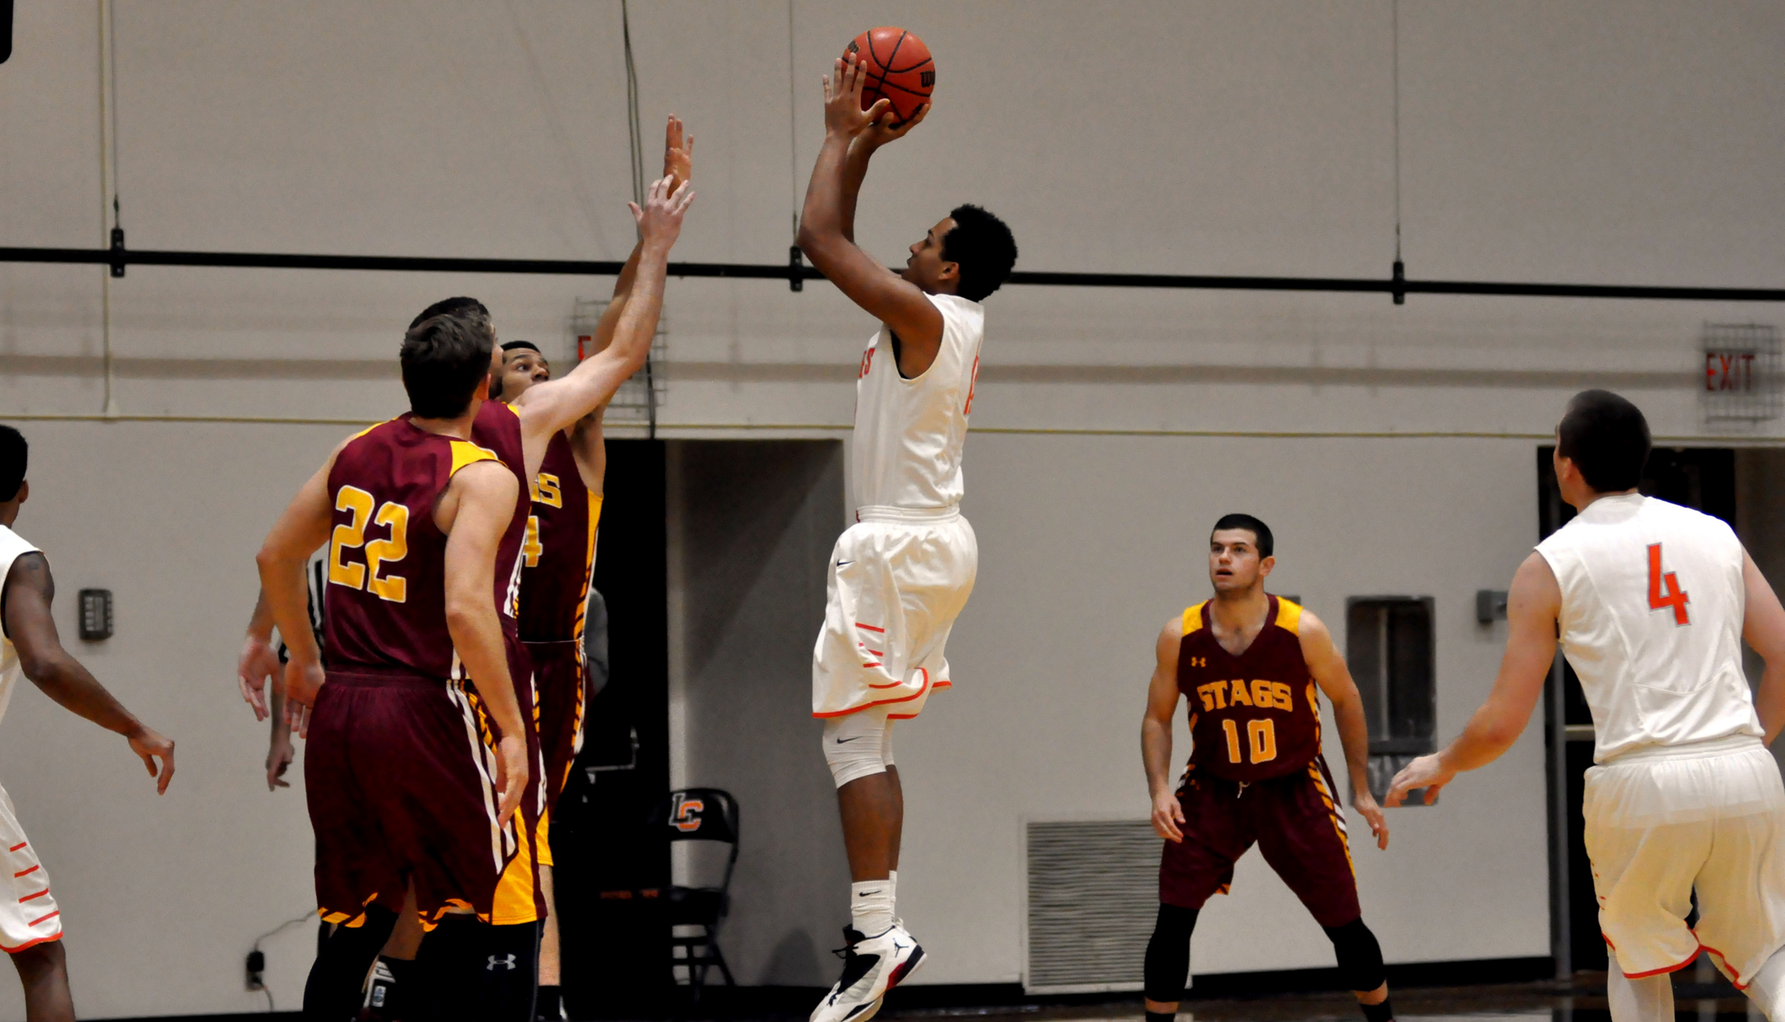 Lewis & Clark falls to Stags in home opener